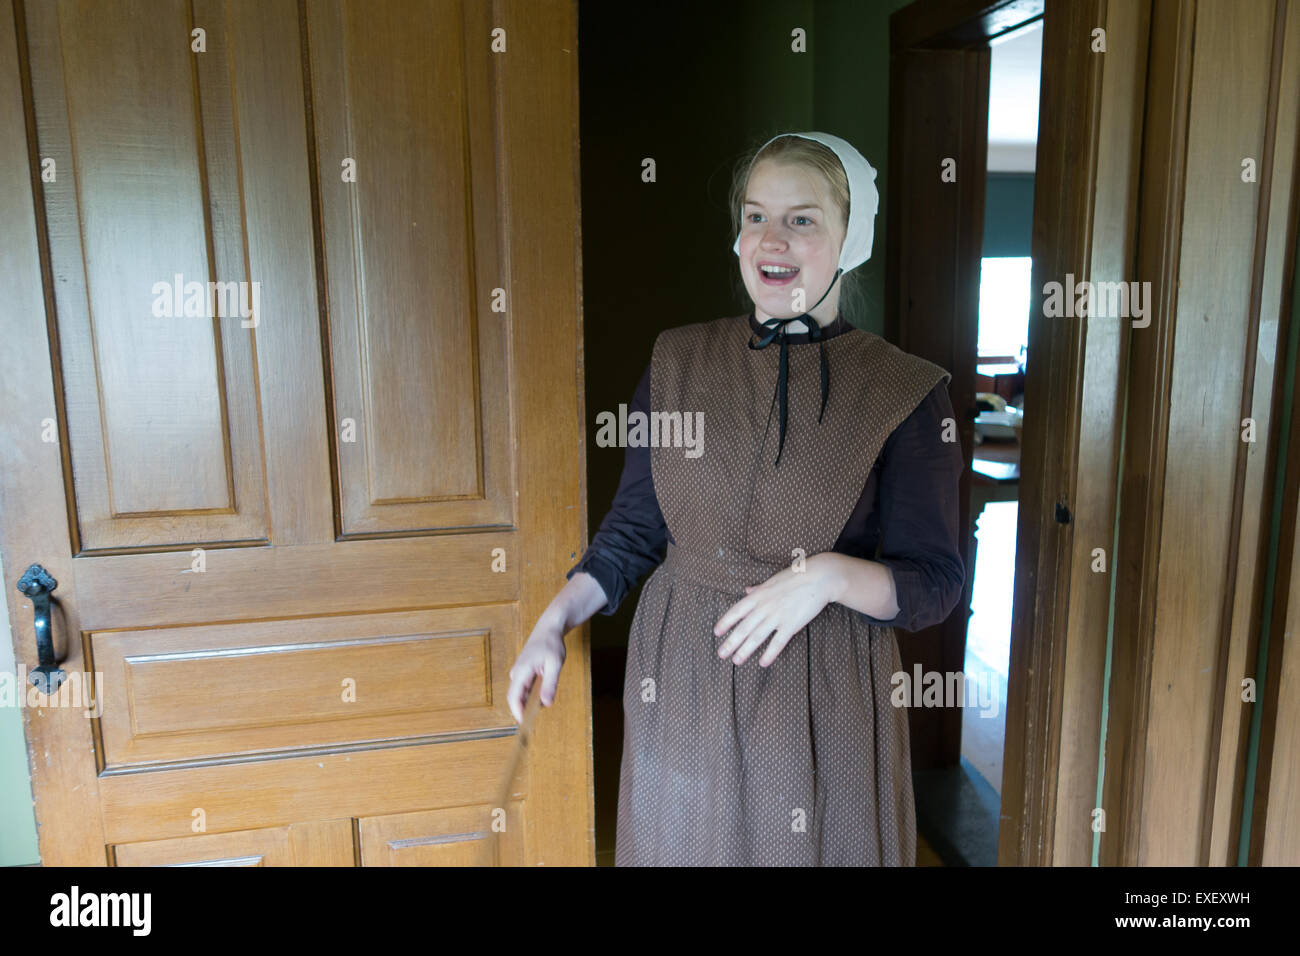 German Mennonite female woman - Stock Image